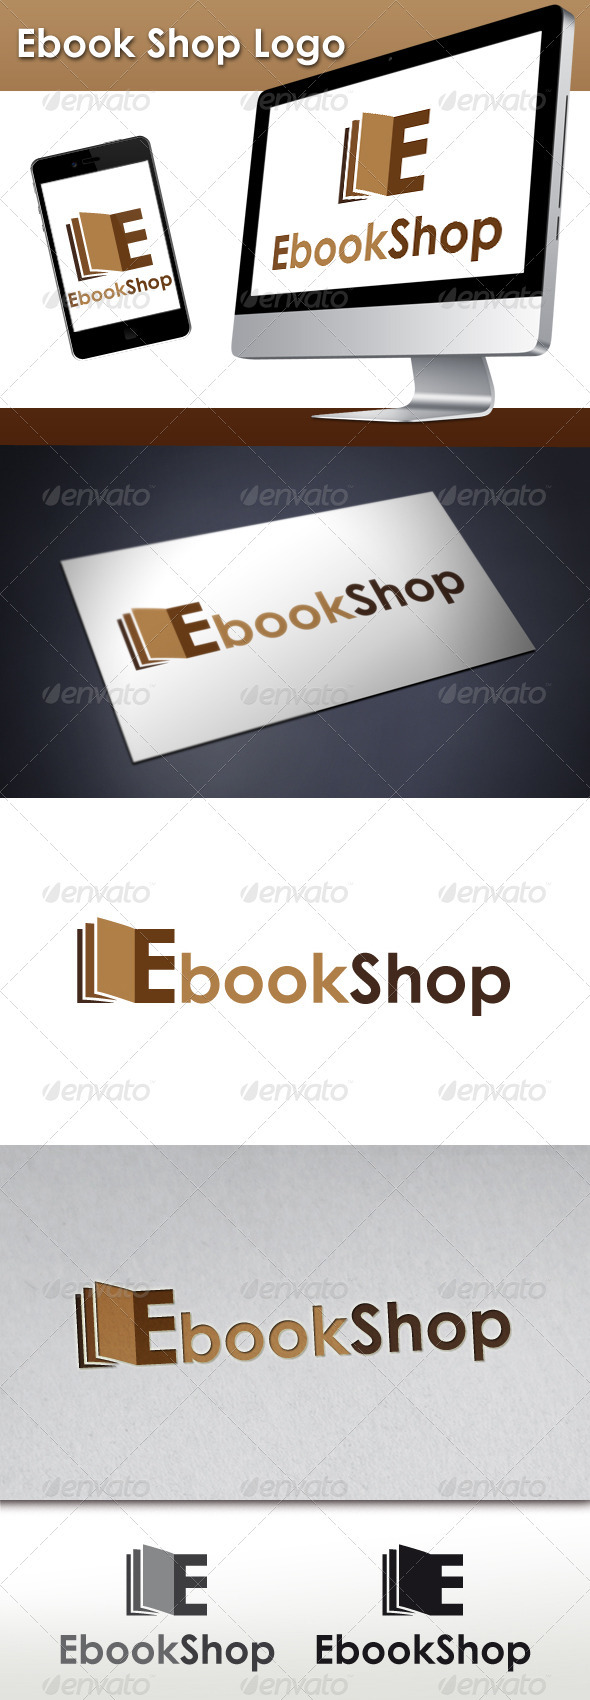 GraphicRiver Ebook Shop Logo 3409332